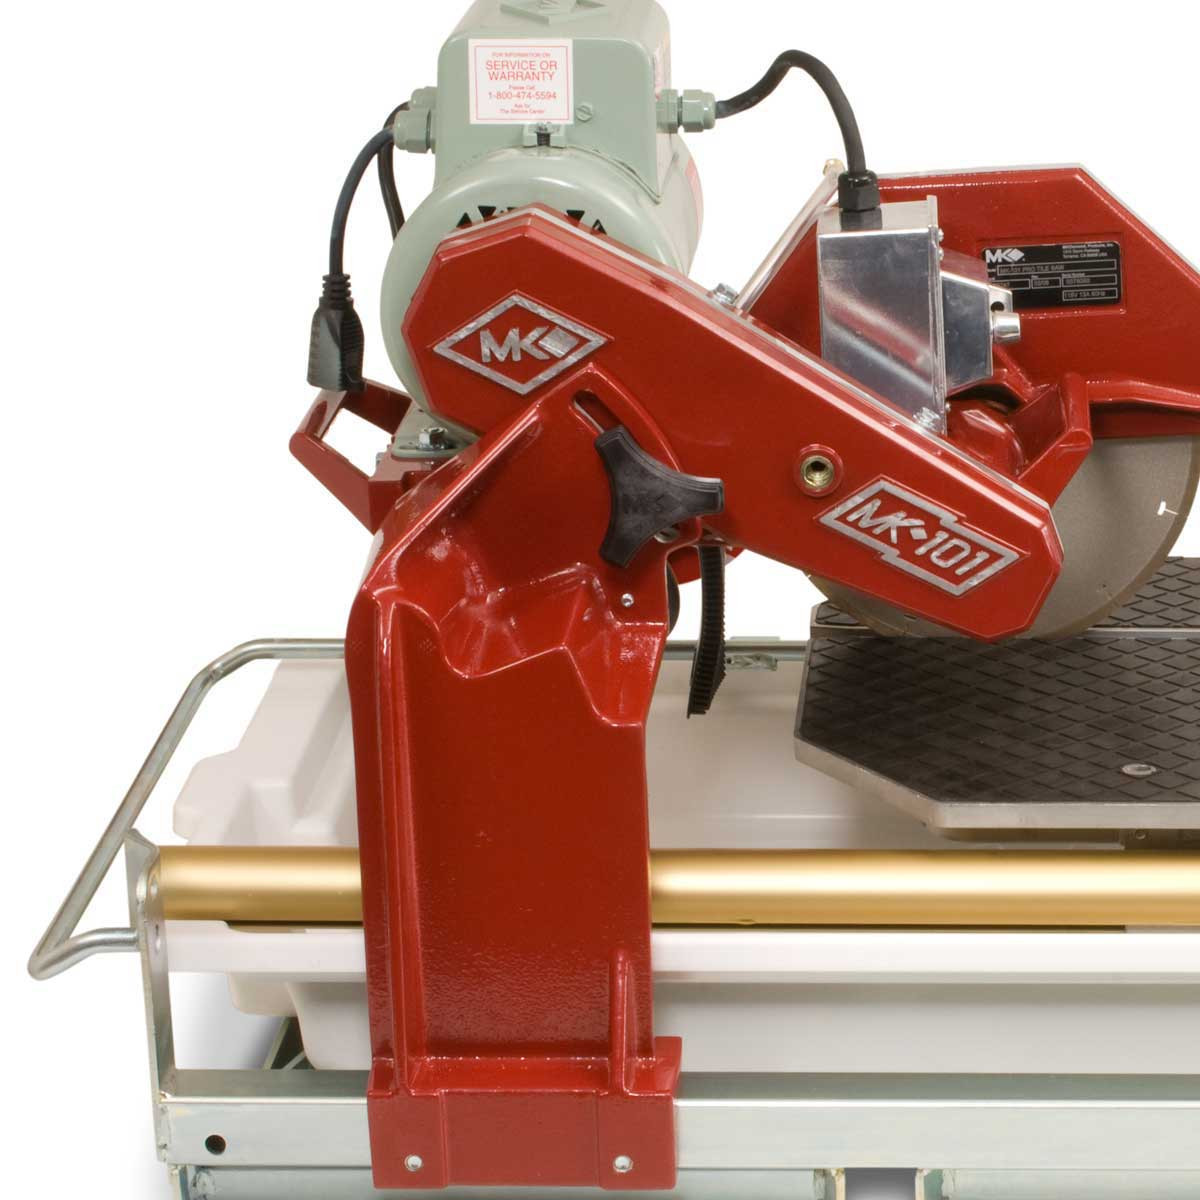 MK pro series tile saw belt driven motor